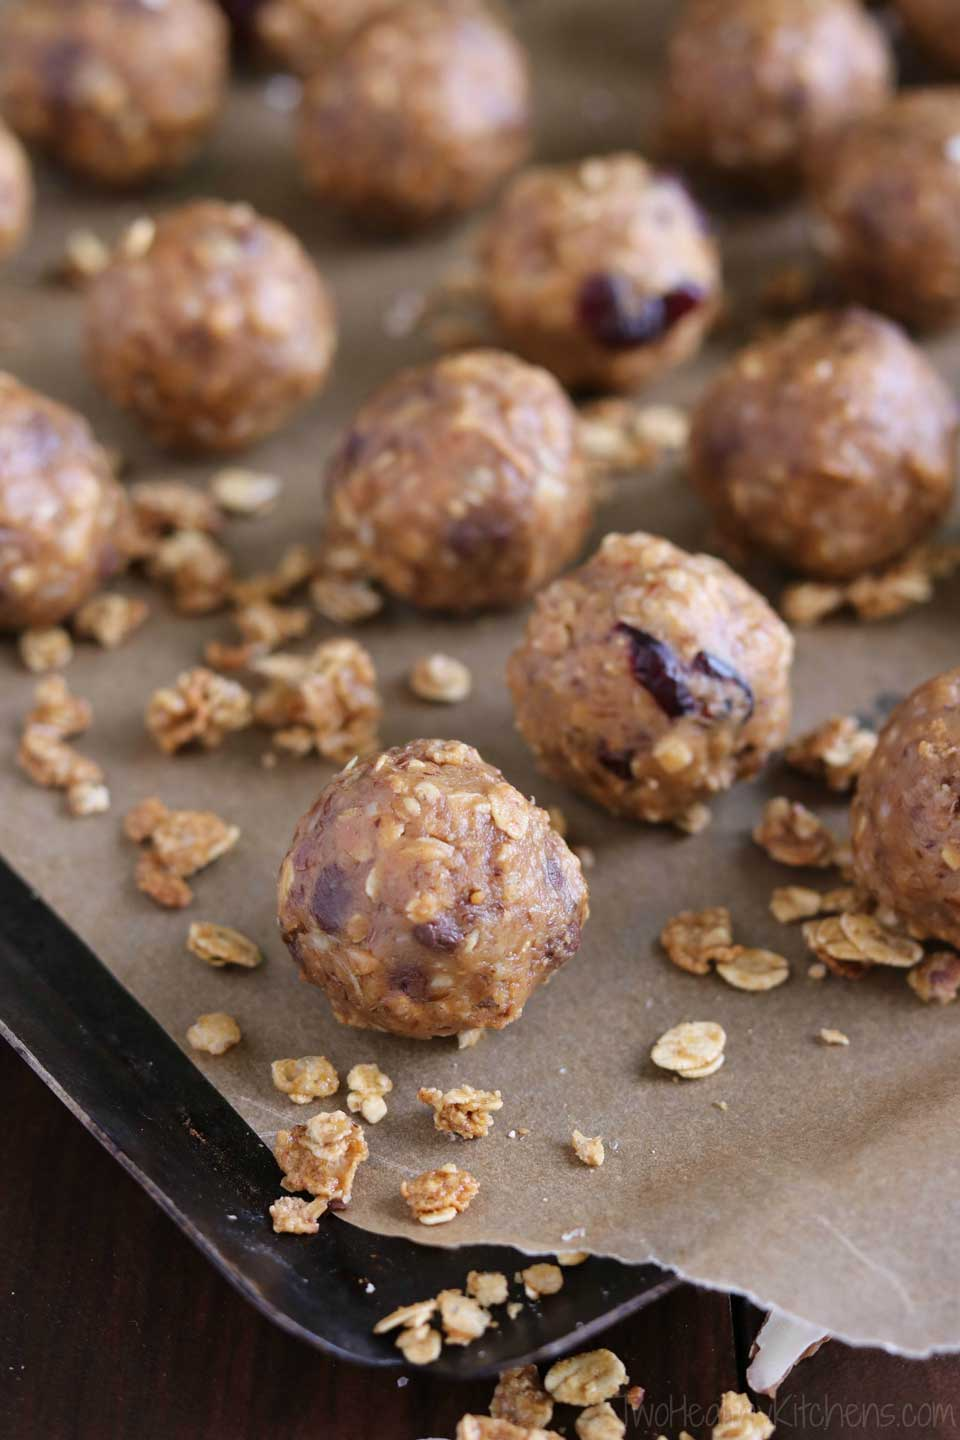 Freezable, no-bake Energy Balls with protein and whole grains! These Crunchy Granola Snack Bites will keep you satisfyingly full and power you through whatever the day might hold. A perfect healthy snack recipe, or a grab-and-go, make-ahead breakfast recipe! With peanut butter, oats, flax, and granola, plus dried fruit or chocolate chips - these energy bites are crunchy, chewy, and delicious! A healthy recipe with a few simple ingredients you probably have on hand!   www.TwoHealthyKitchens.com